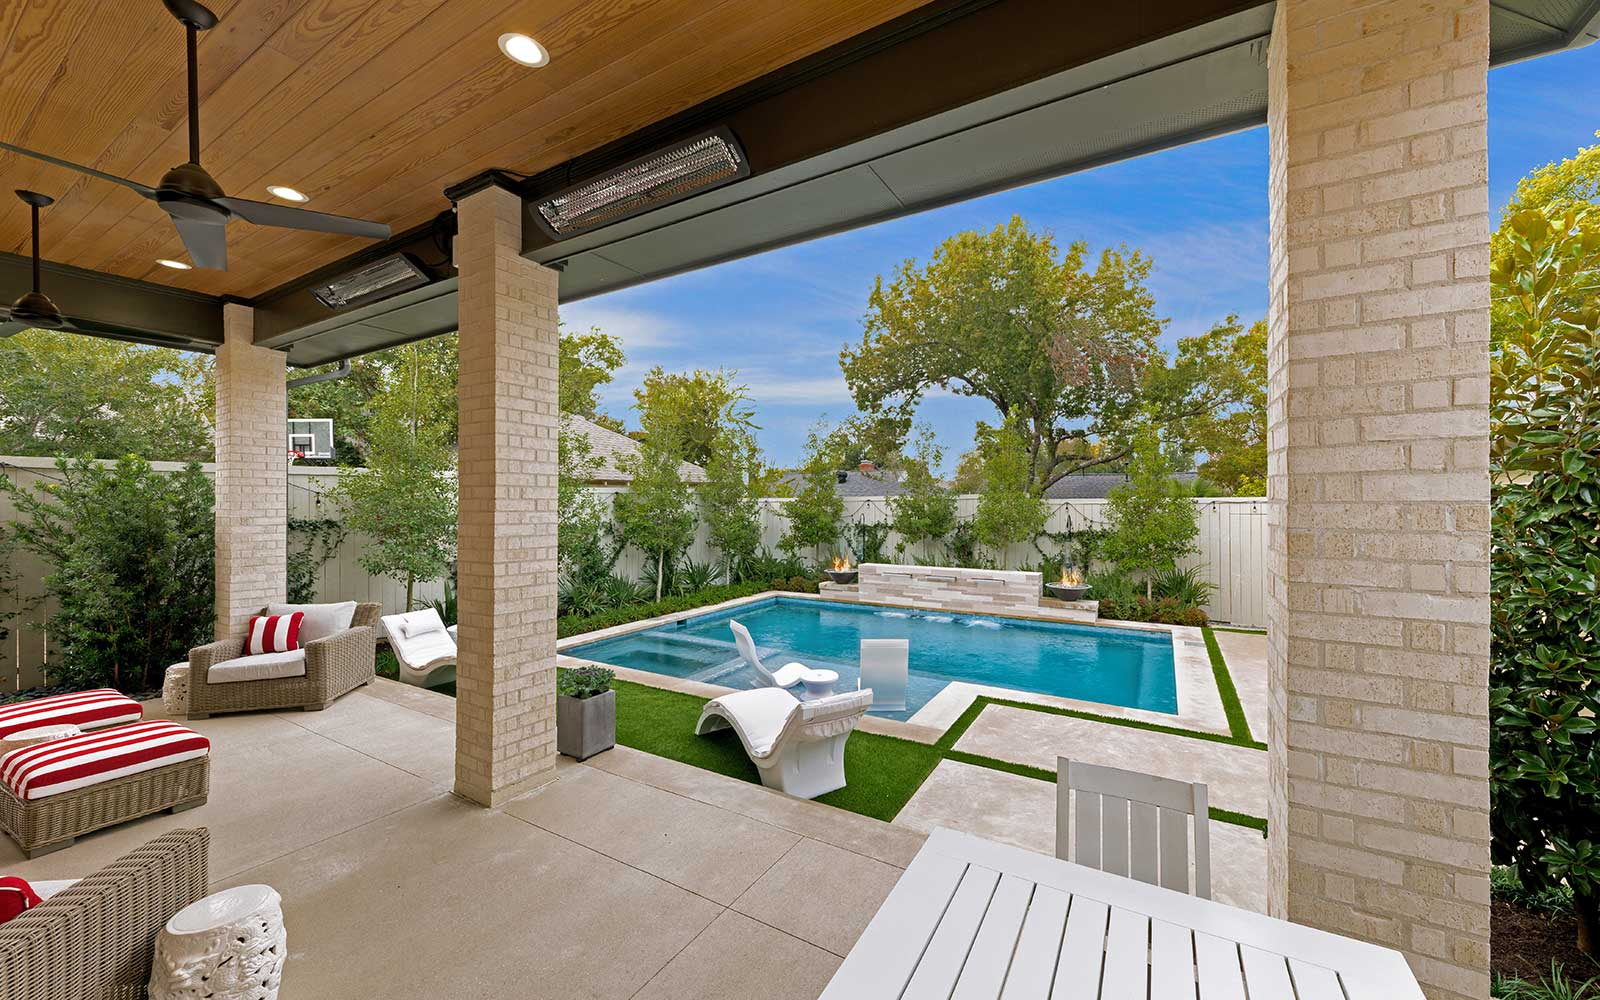 Ddla Design Lakewood Dallasrear Porch View To Pool.